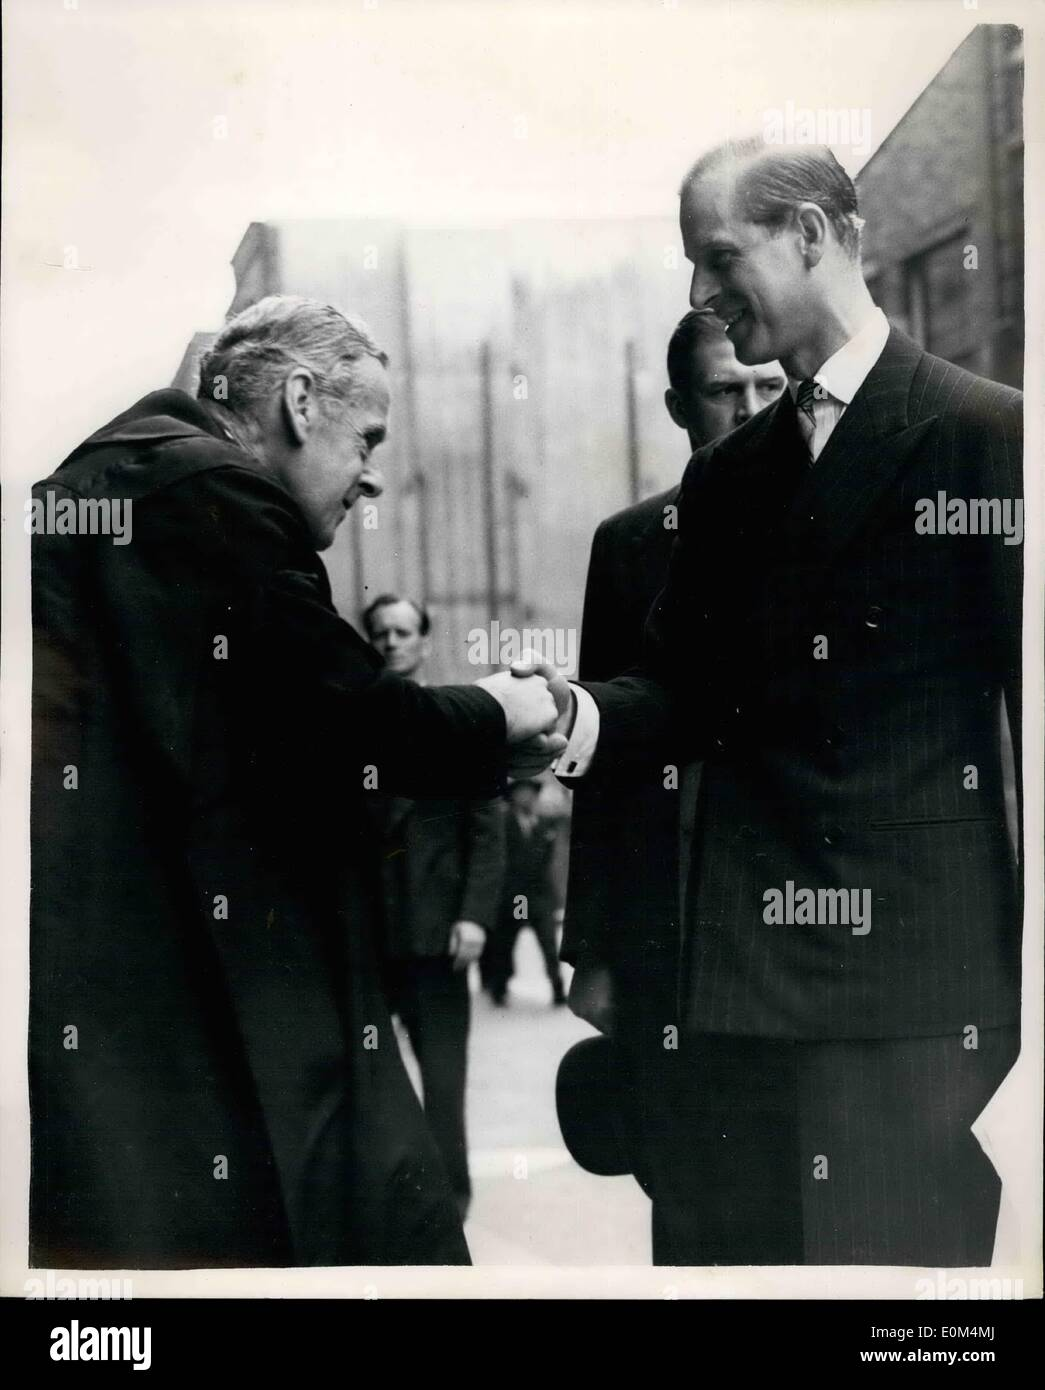 Jul. 07, 1953 - Duke of Edinburgh - second warden: The Duke of Edinburgh this morning attended a court of the Shipwright's Company, and was installed as Second Warden - at Vinters' Hall. Photo shows Mr. Friendley, Hon. Clerk of the Company, greeting the Duke of Edinburgh on his arrival. - Stock Image